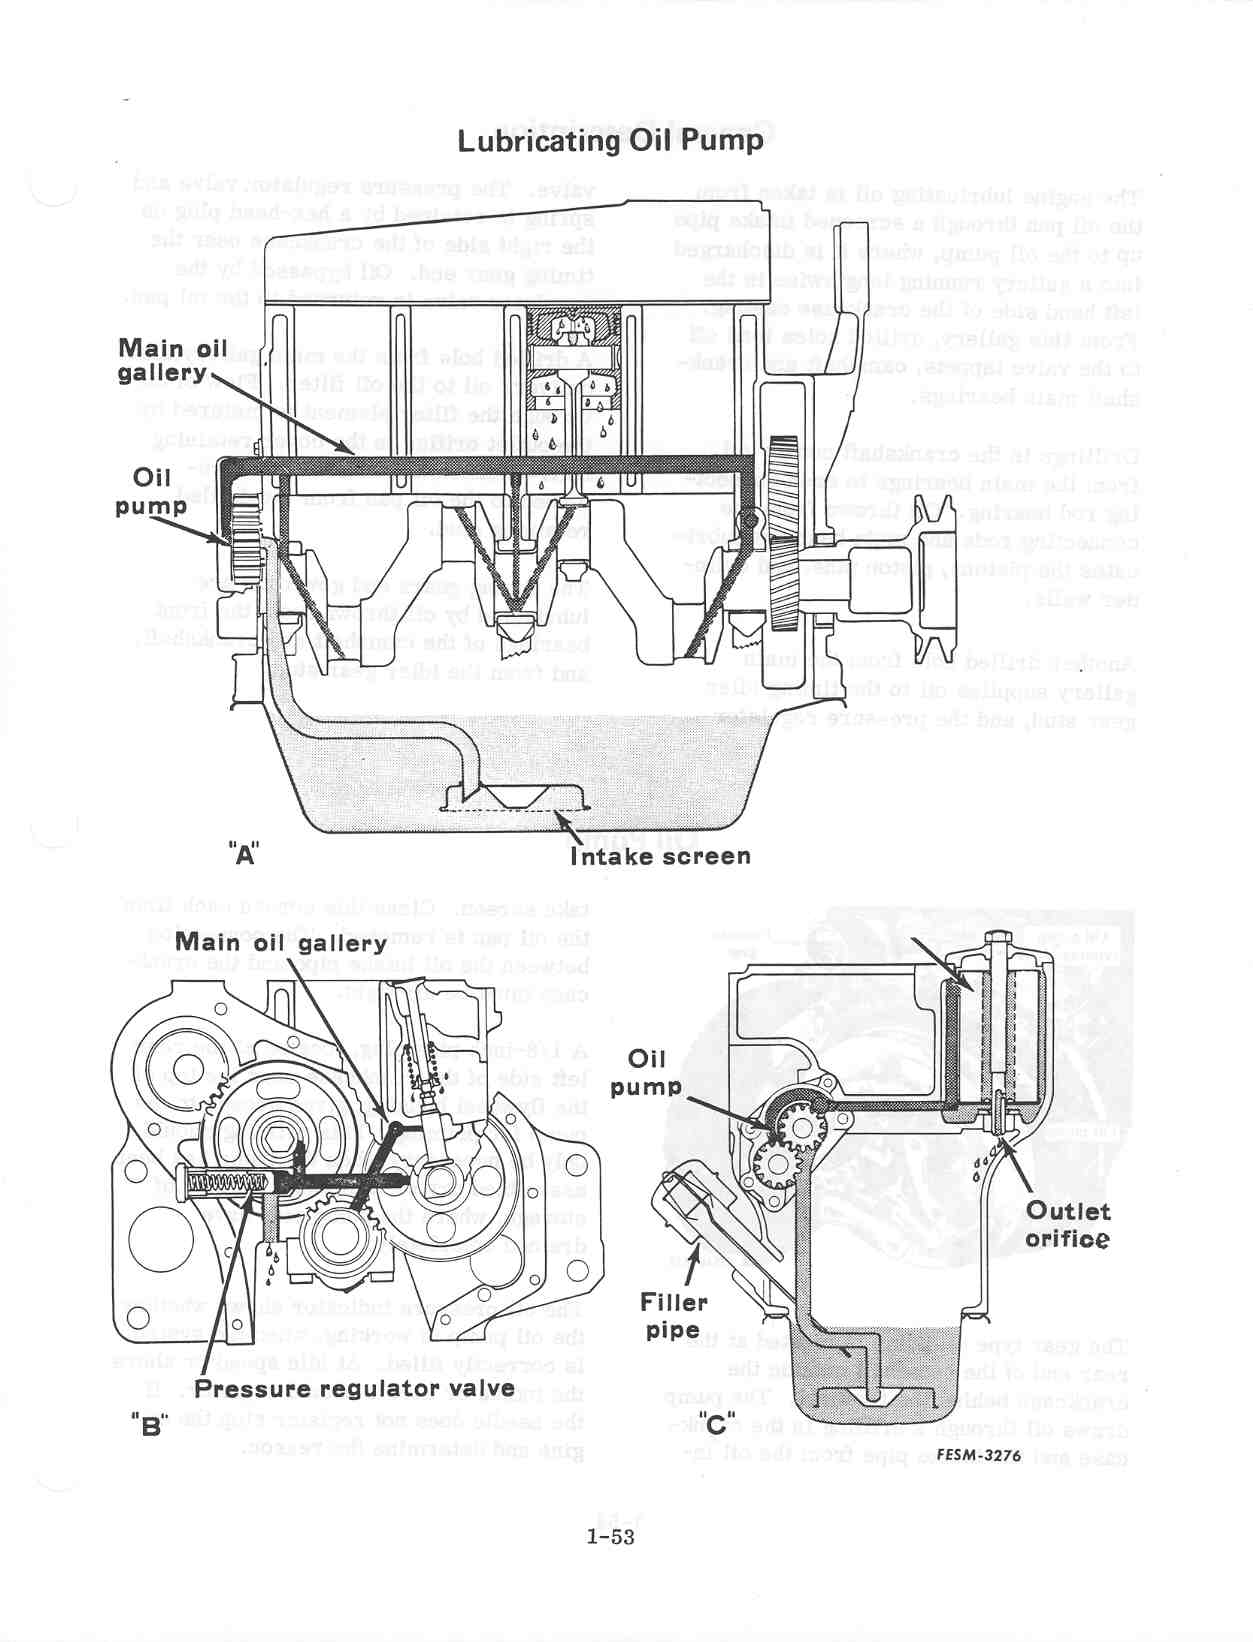 farmall cub oil diagram wiring diagram Farmall Cub Oil Diagram how to prime the oil pump farmall cub